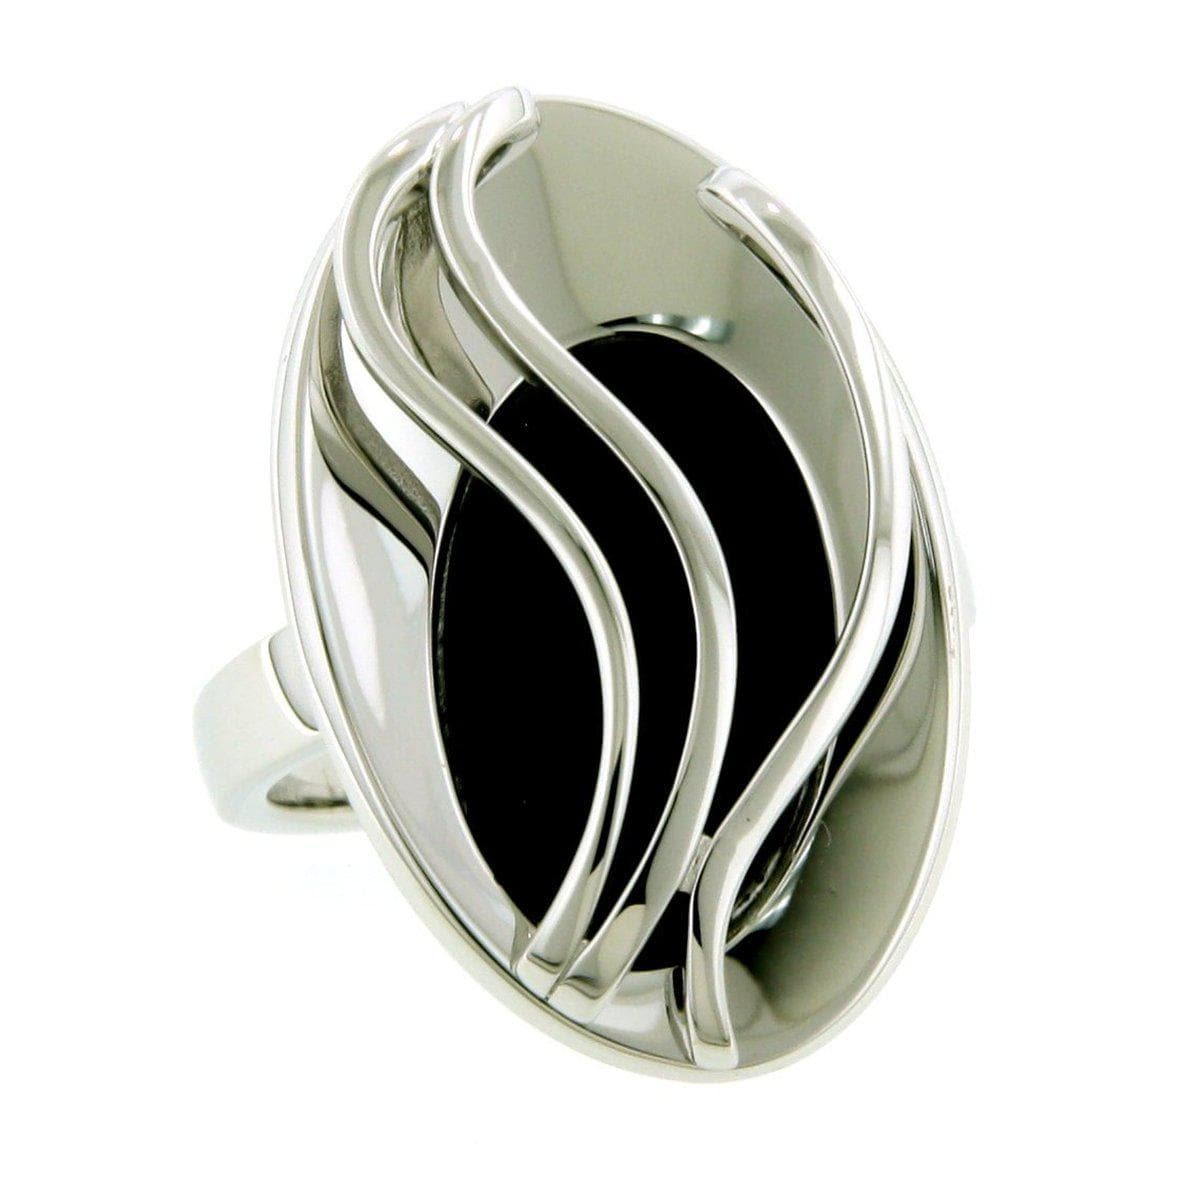 Rhodium Plated Sterling Silver Onyx Ring - 42/08696-Breuning-Renee Taylor Gallery